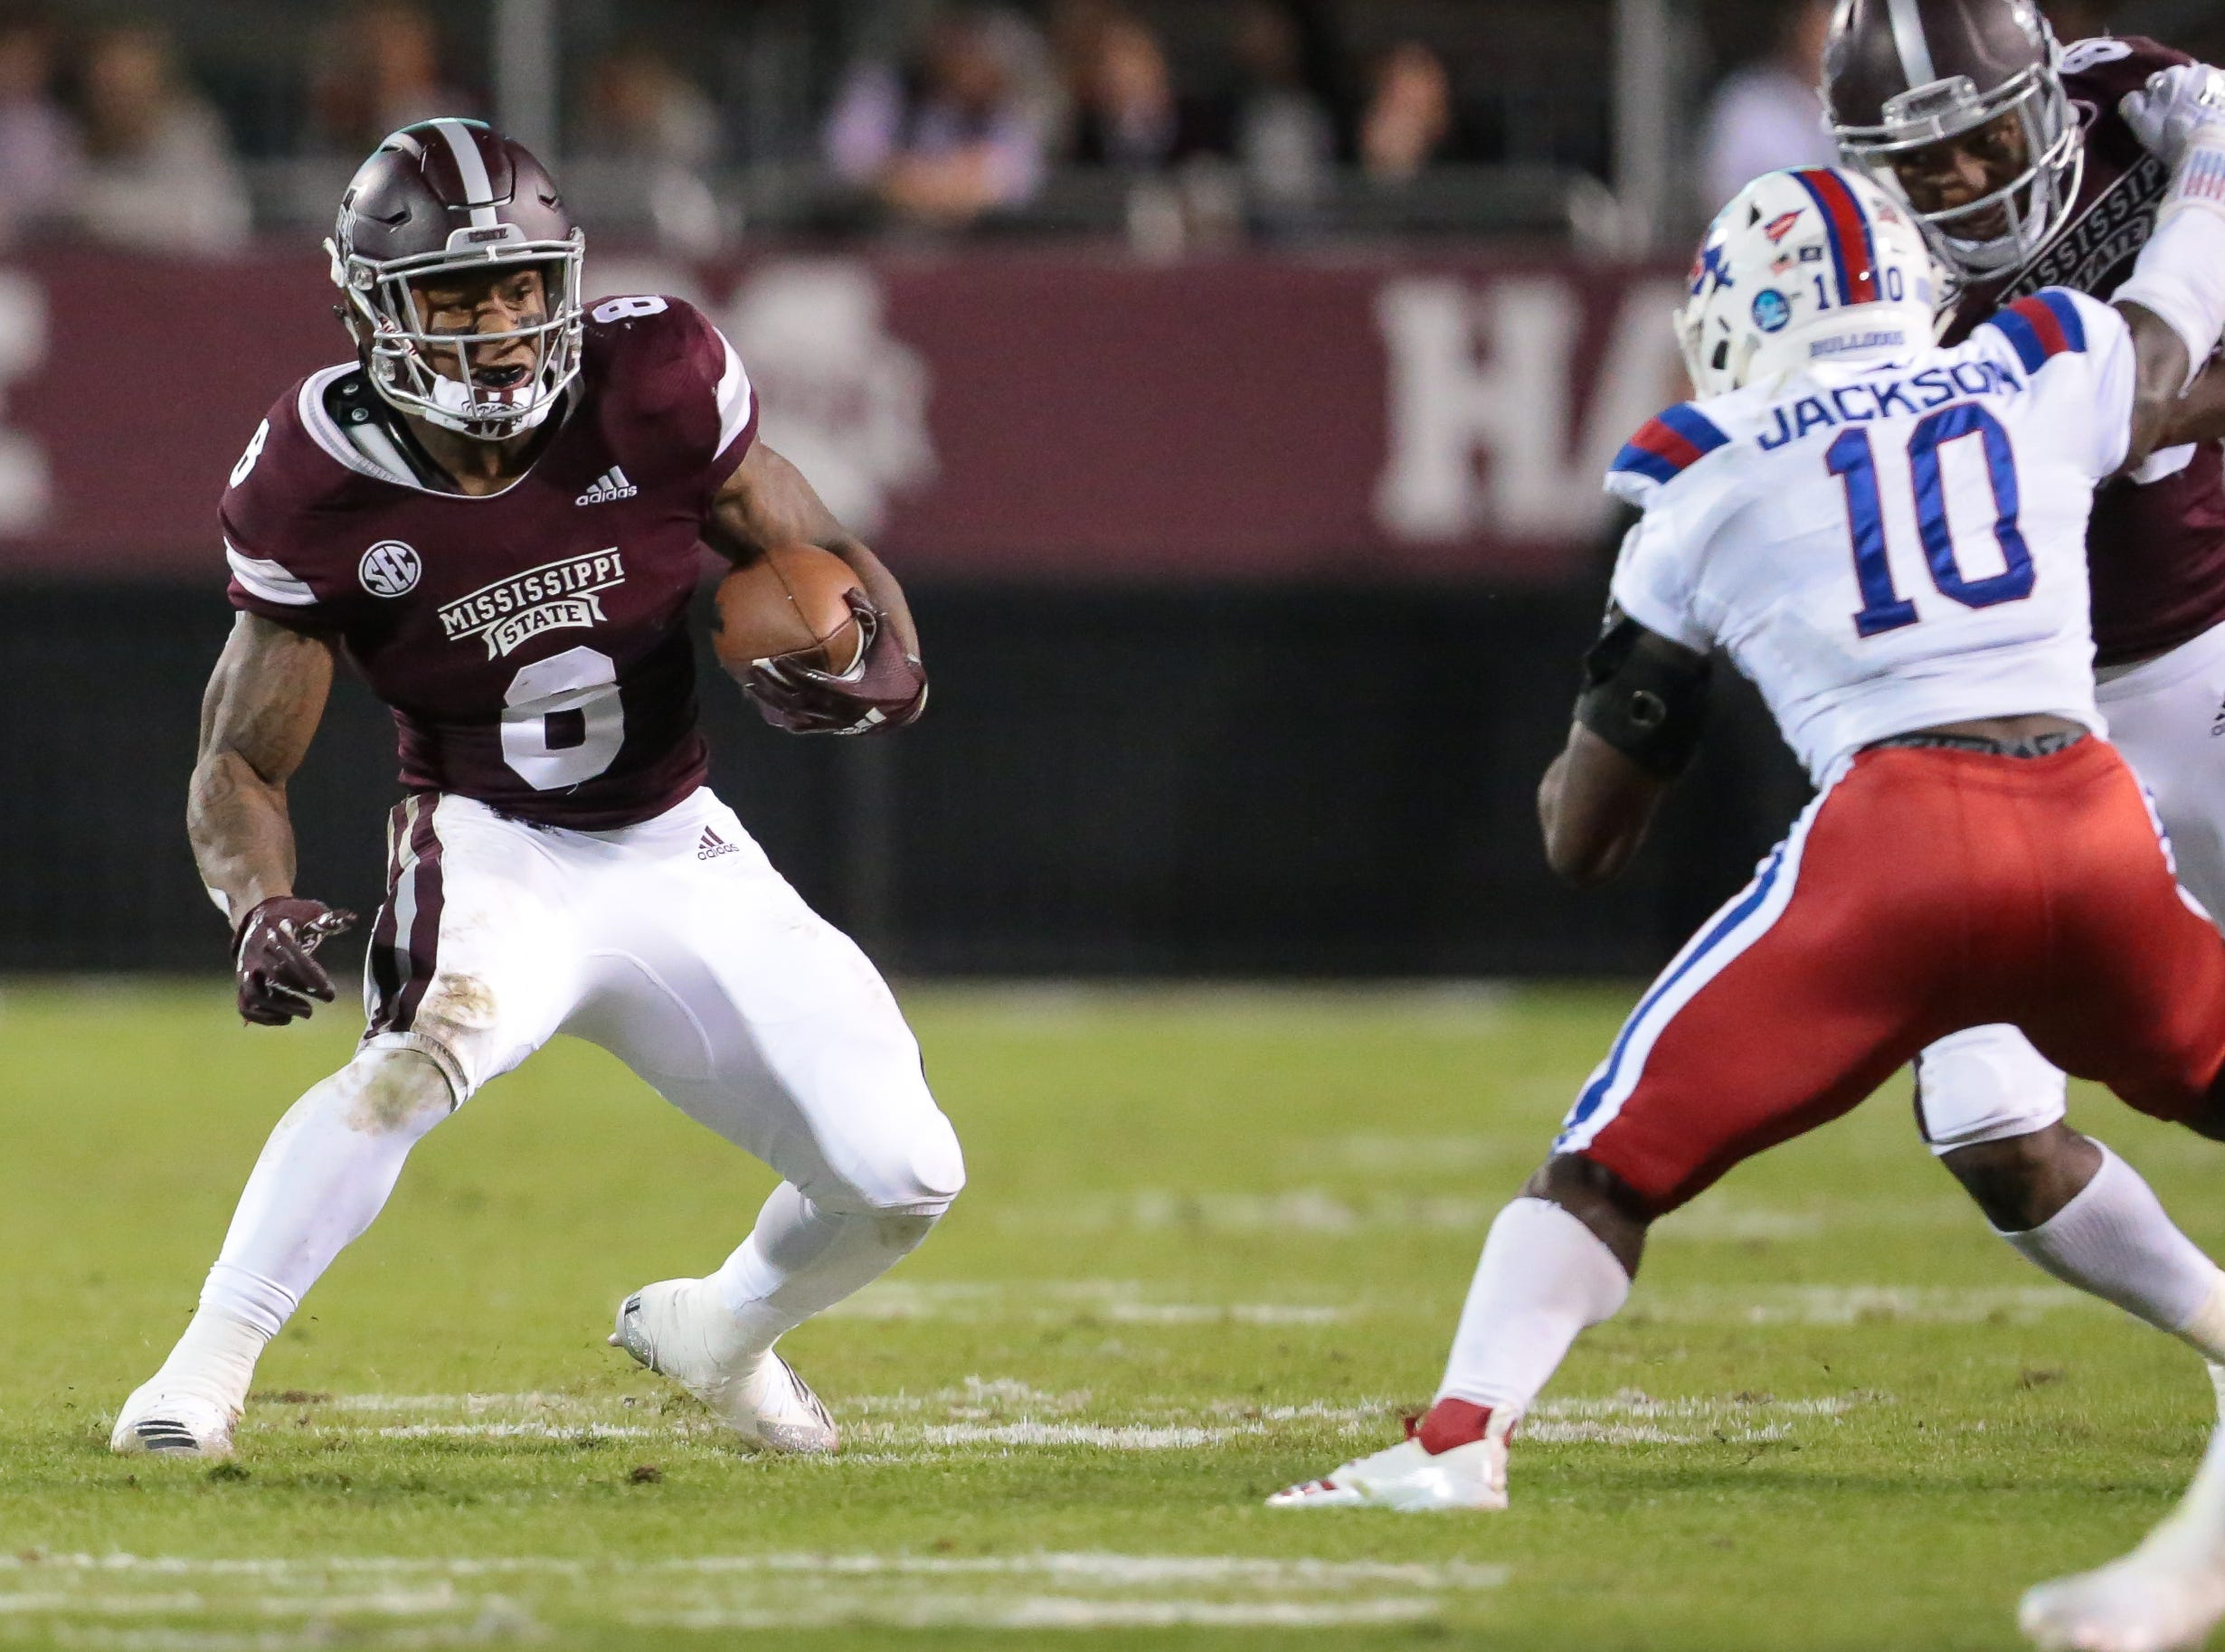 Mississippi State's Kylin Hill (8) looks for running room in the second quarter. Mississippi State and Louisiana Tech played in a college football game on Saturday, November 3, 2018, in Starkville. Photo by Keith Warren/Madatory Photo Credit